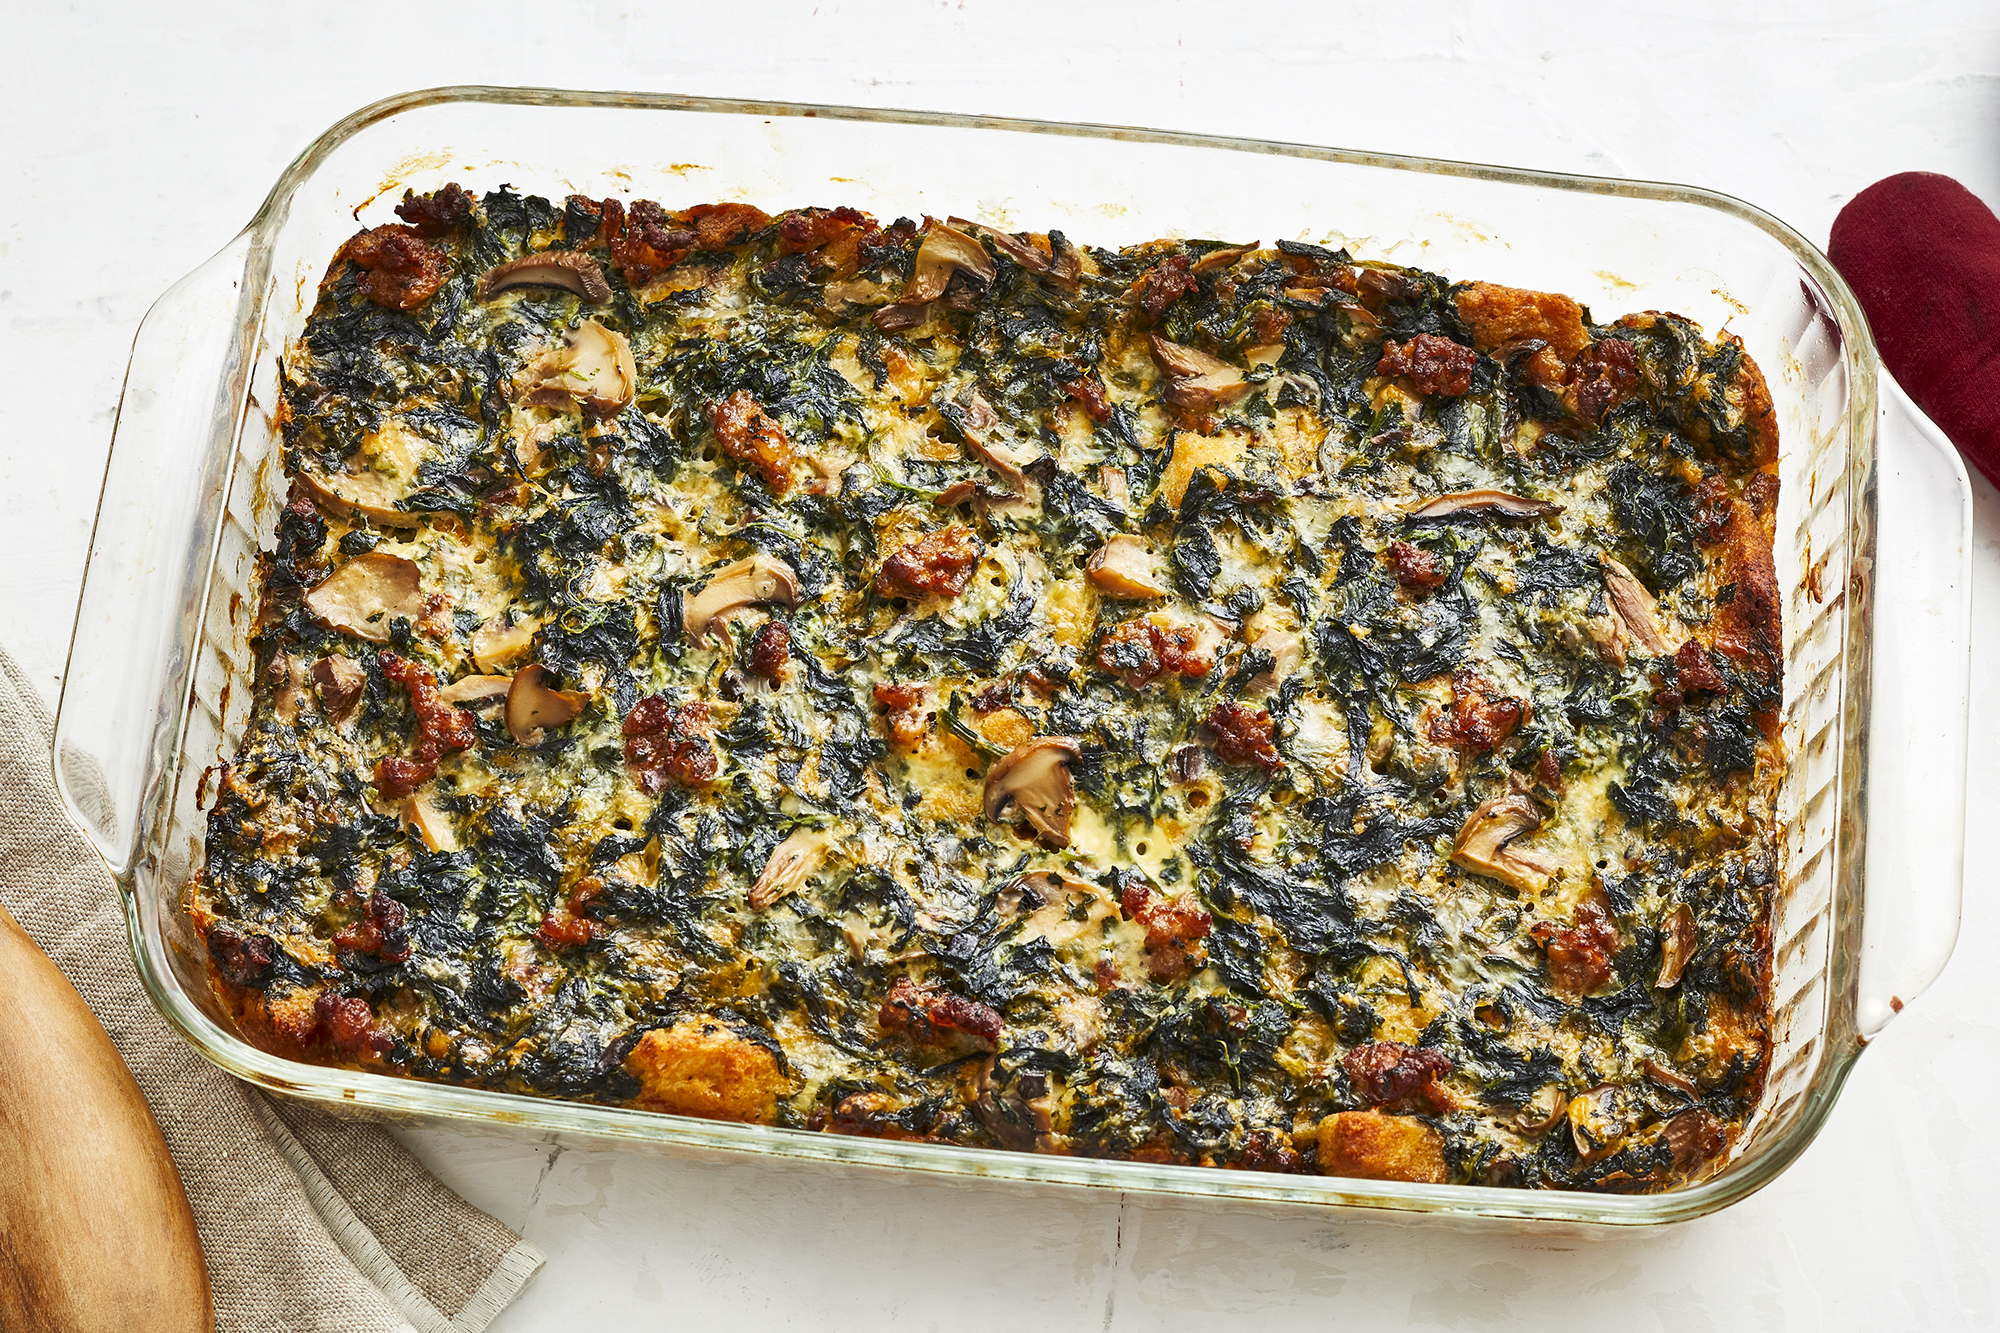 overhead view of a make ahead breakfast casserole in a clear 9x13 baking dish